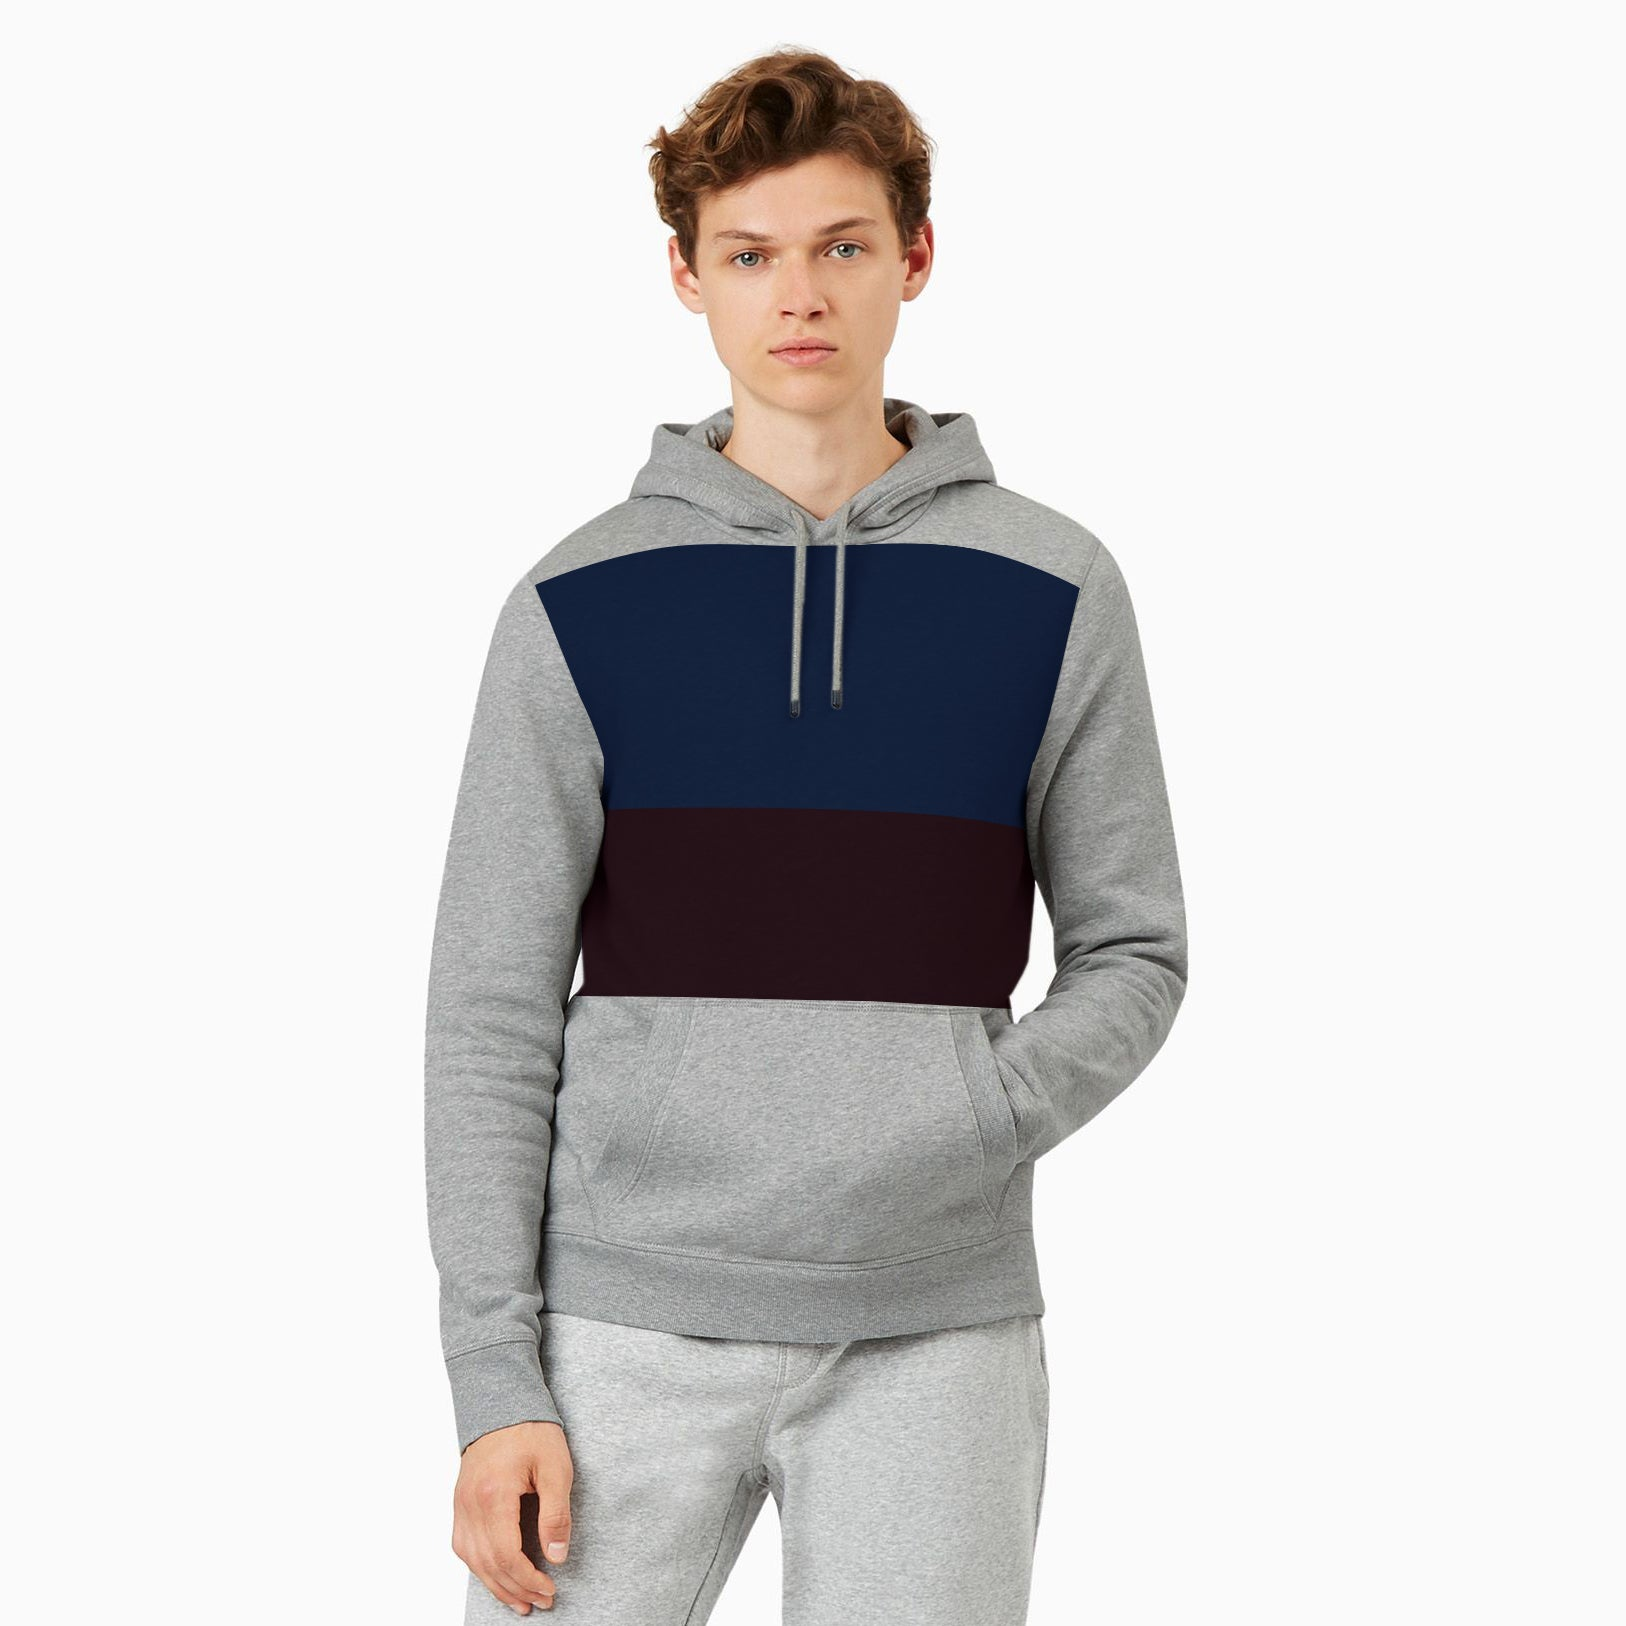 Next Fleece Pullover Hoodie For Men-Dark Grey With Blue & Burgundy Panel-NA10640